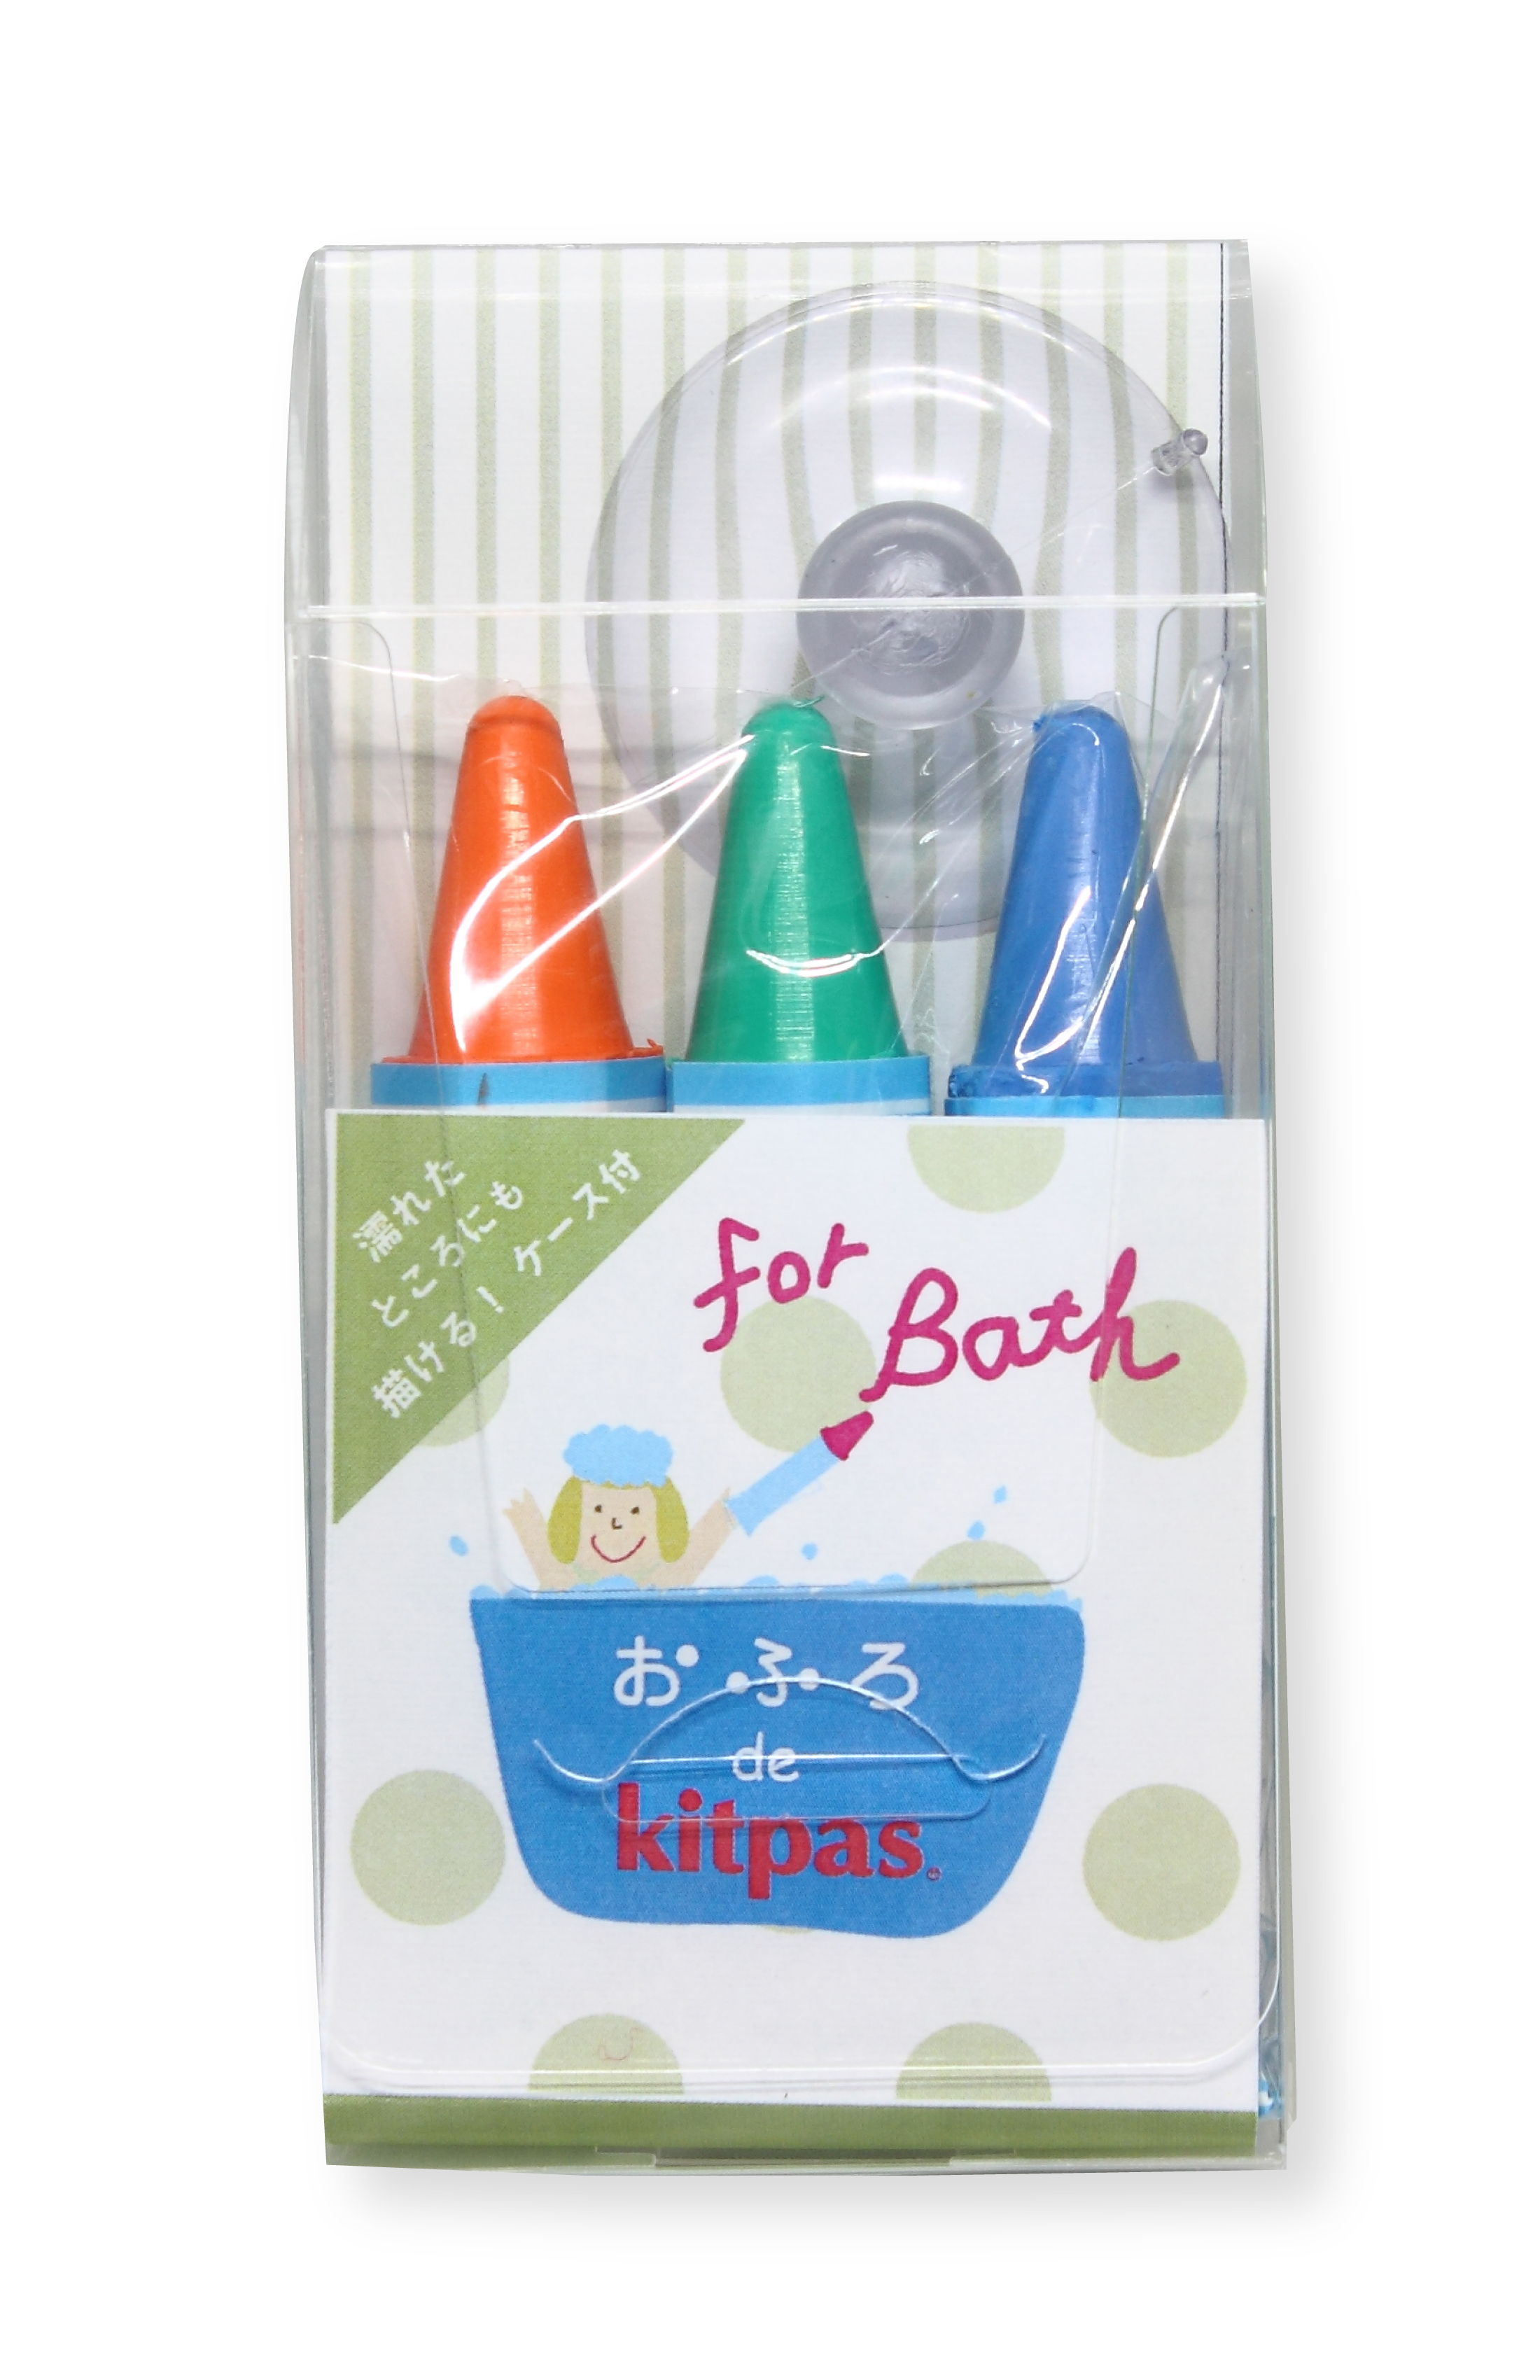 Kitpas - bath crayons - 3 pack Orange Green & Blue